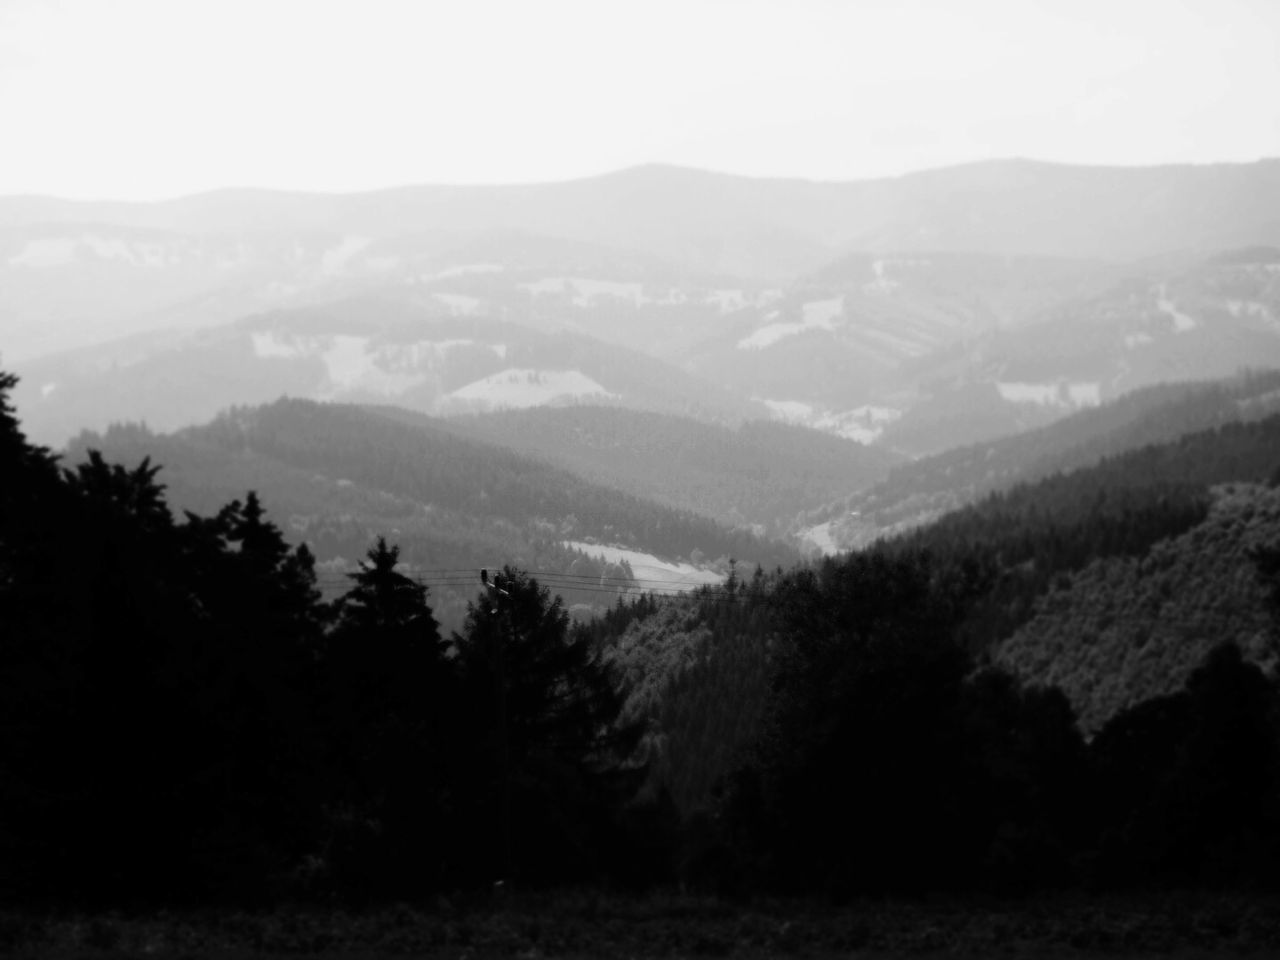 mountain, landscape, nature, beauty in nature, tranquil scene, tranquility, scenics, outdoors, day, no people, tree, mountain range, fog, forest, sky